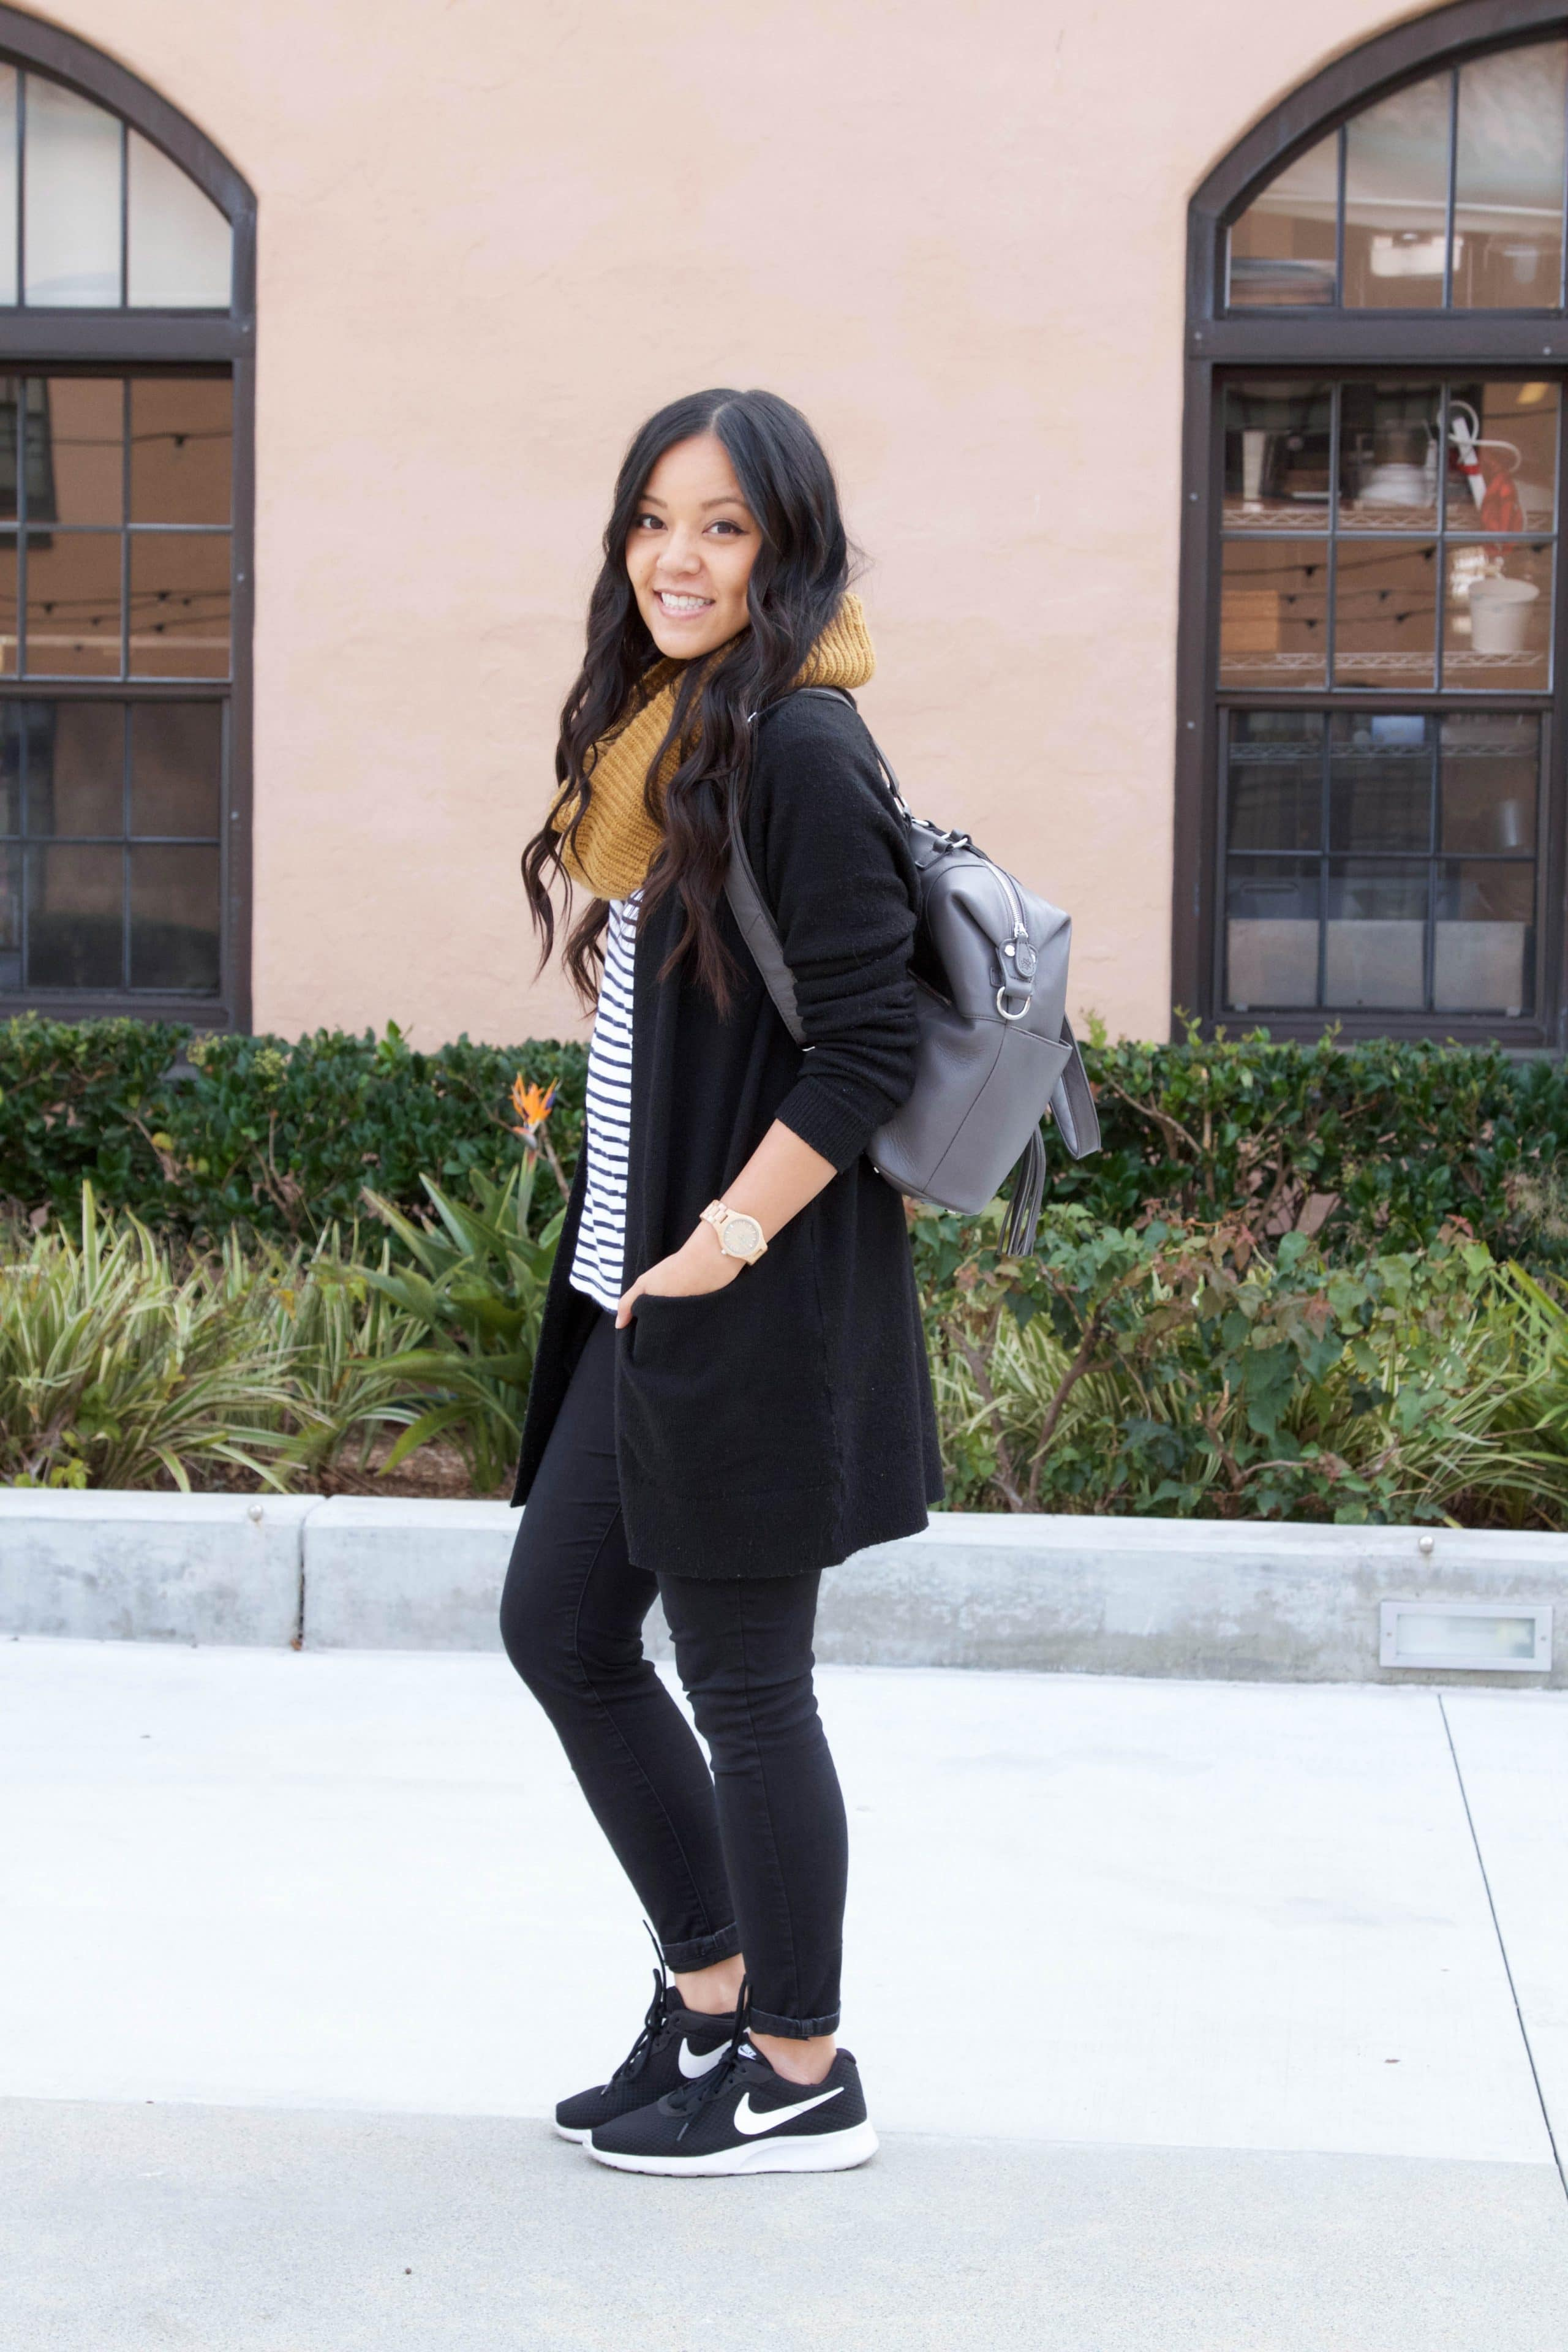 Travel Outfit: Black Skinnies + Sneakers + Scarf + Striped Tee + Gray Bag